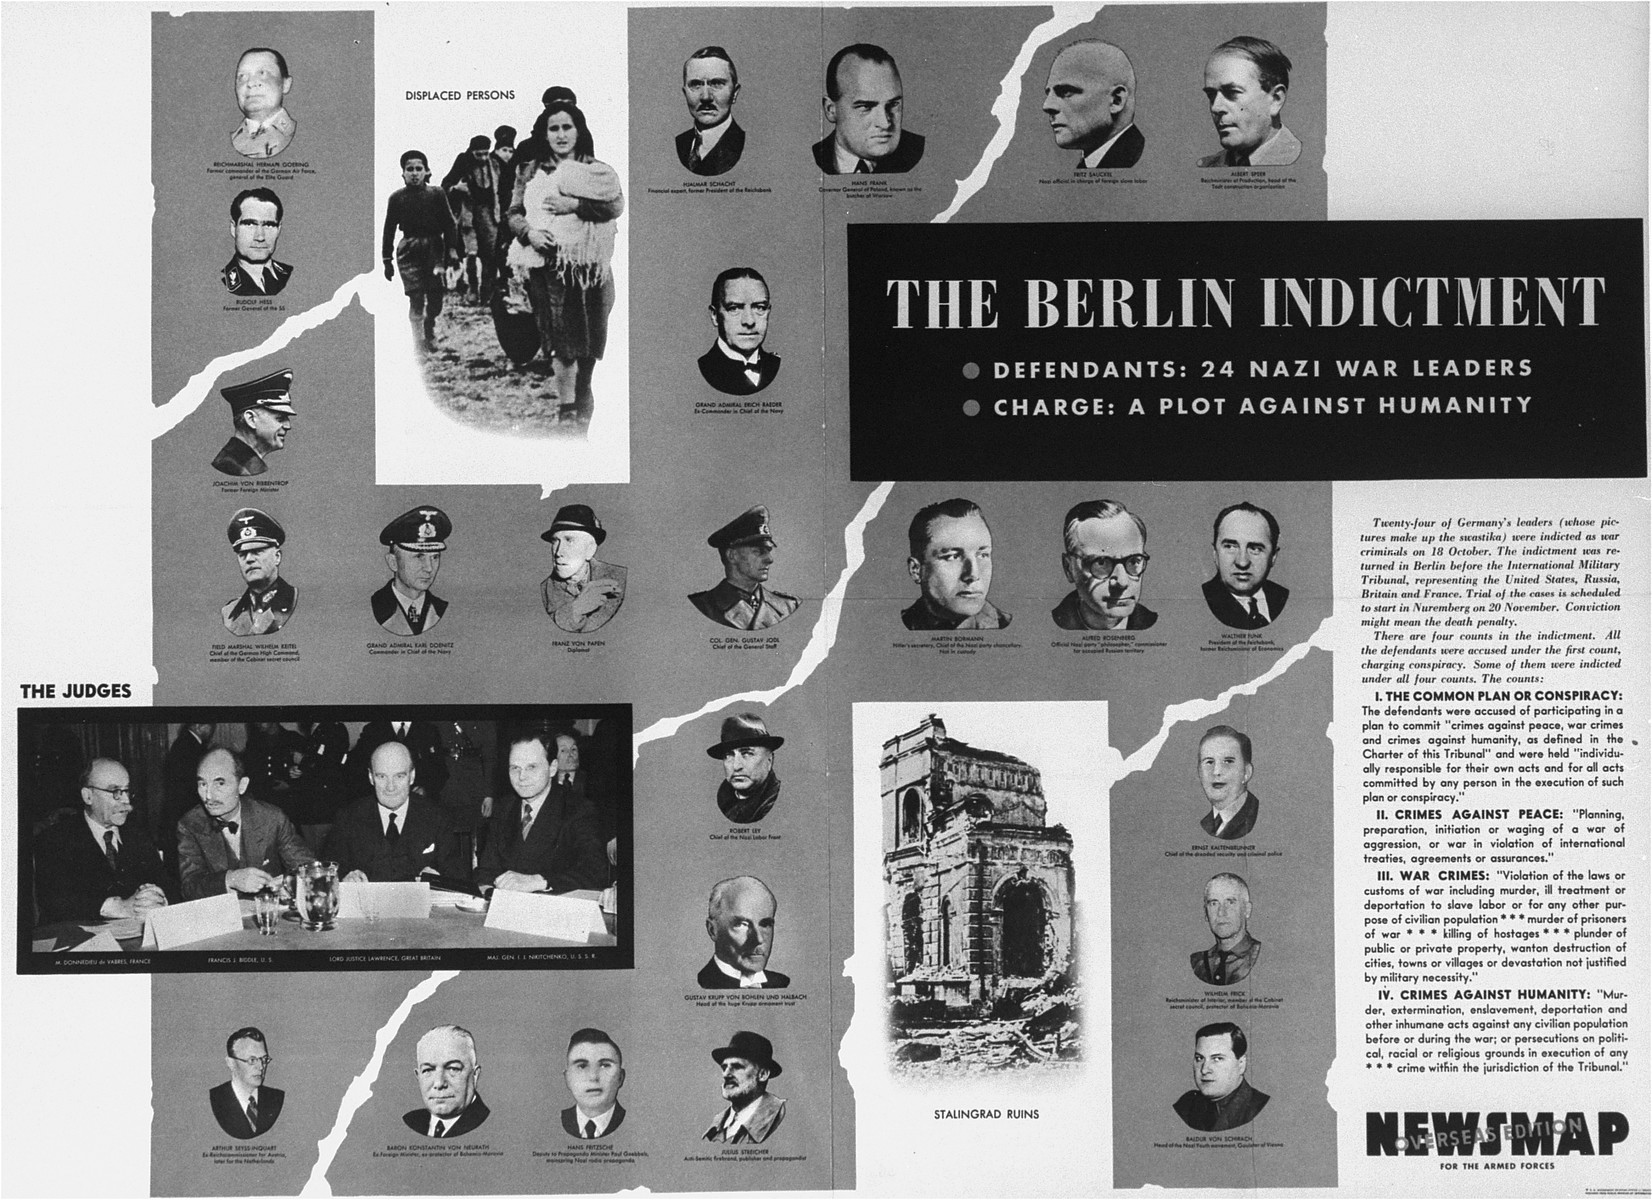 An insert for American soldiers published in Newsmap for the Armed Forces, overseas edition, explaining the indictment against the defendants in the International Military Tribunal trial of war criminals.